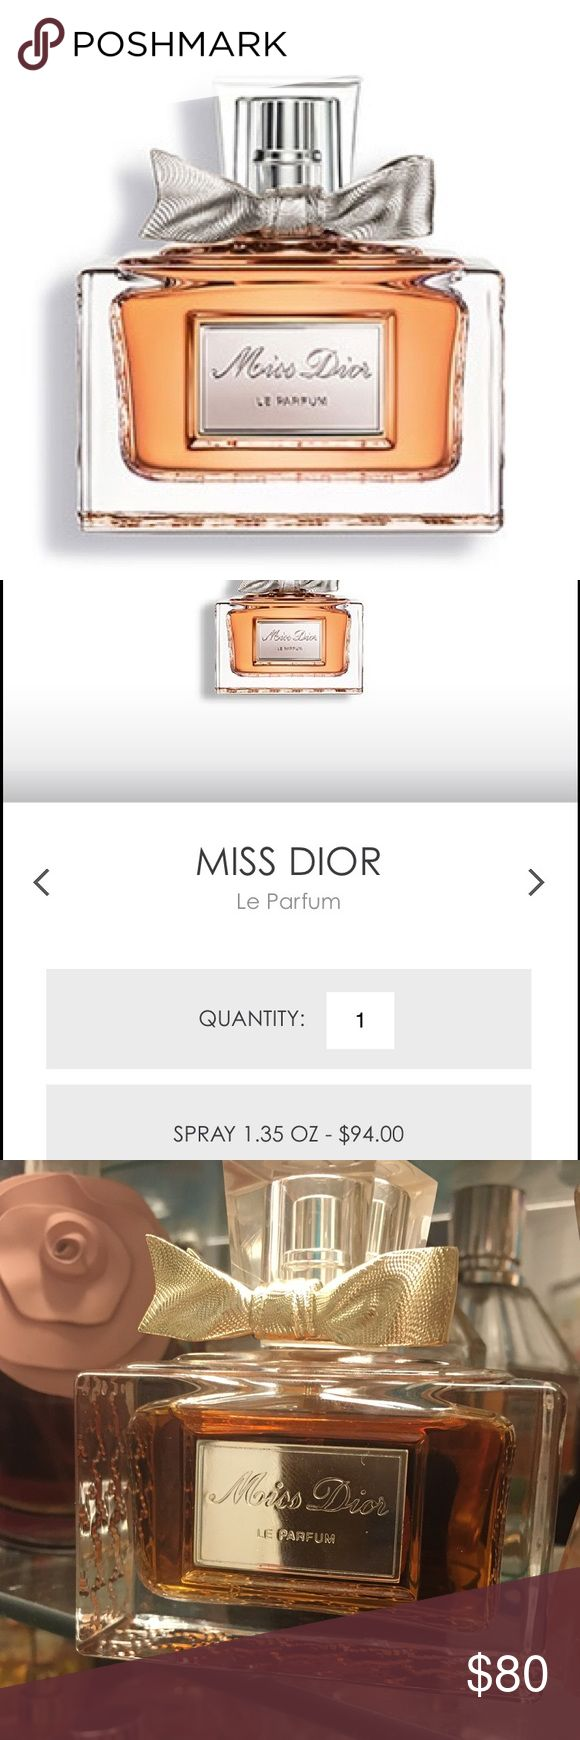 Authentic Miss Dior Le Parfum 1.35 fl. oz. / 40 ml New without box. May have only been sprayed 1-2 times, max. Current retail price $94 USD + tax. Christian Dior Other